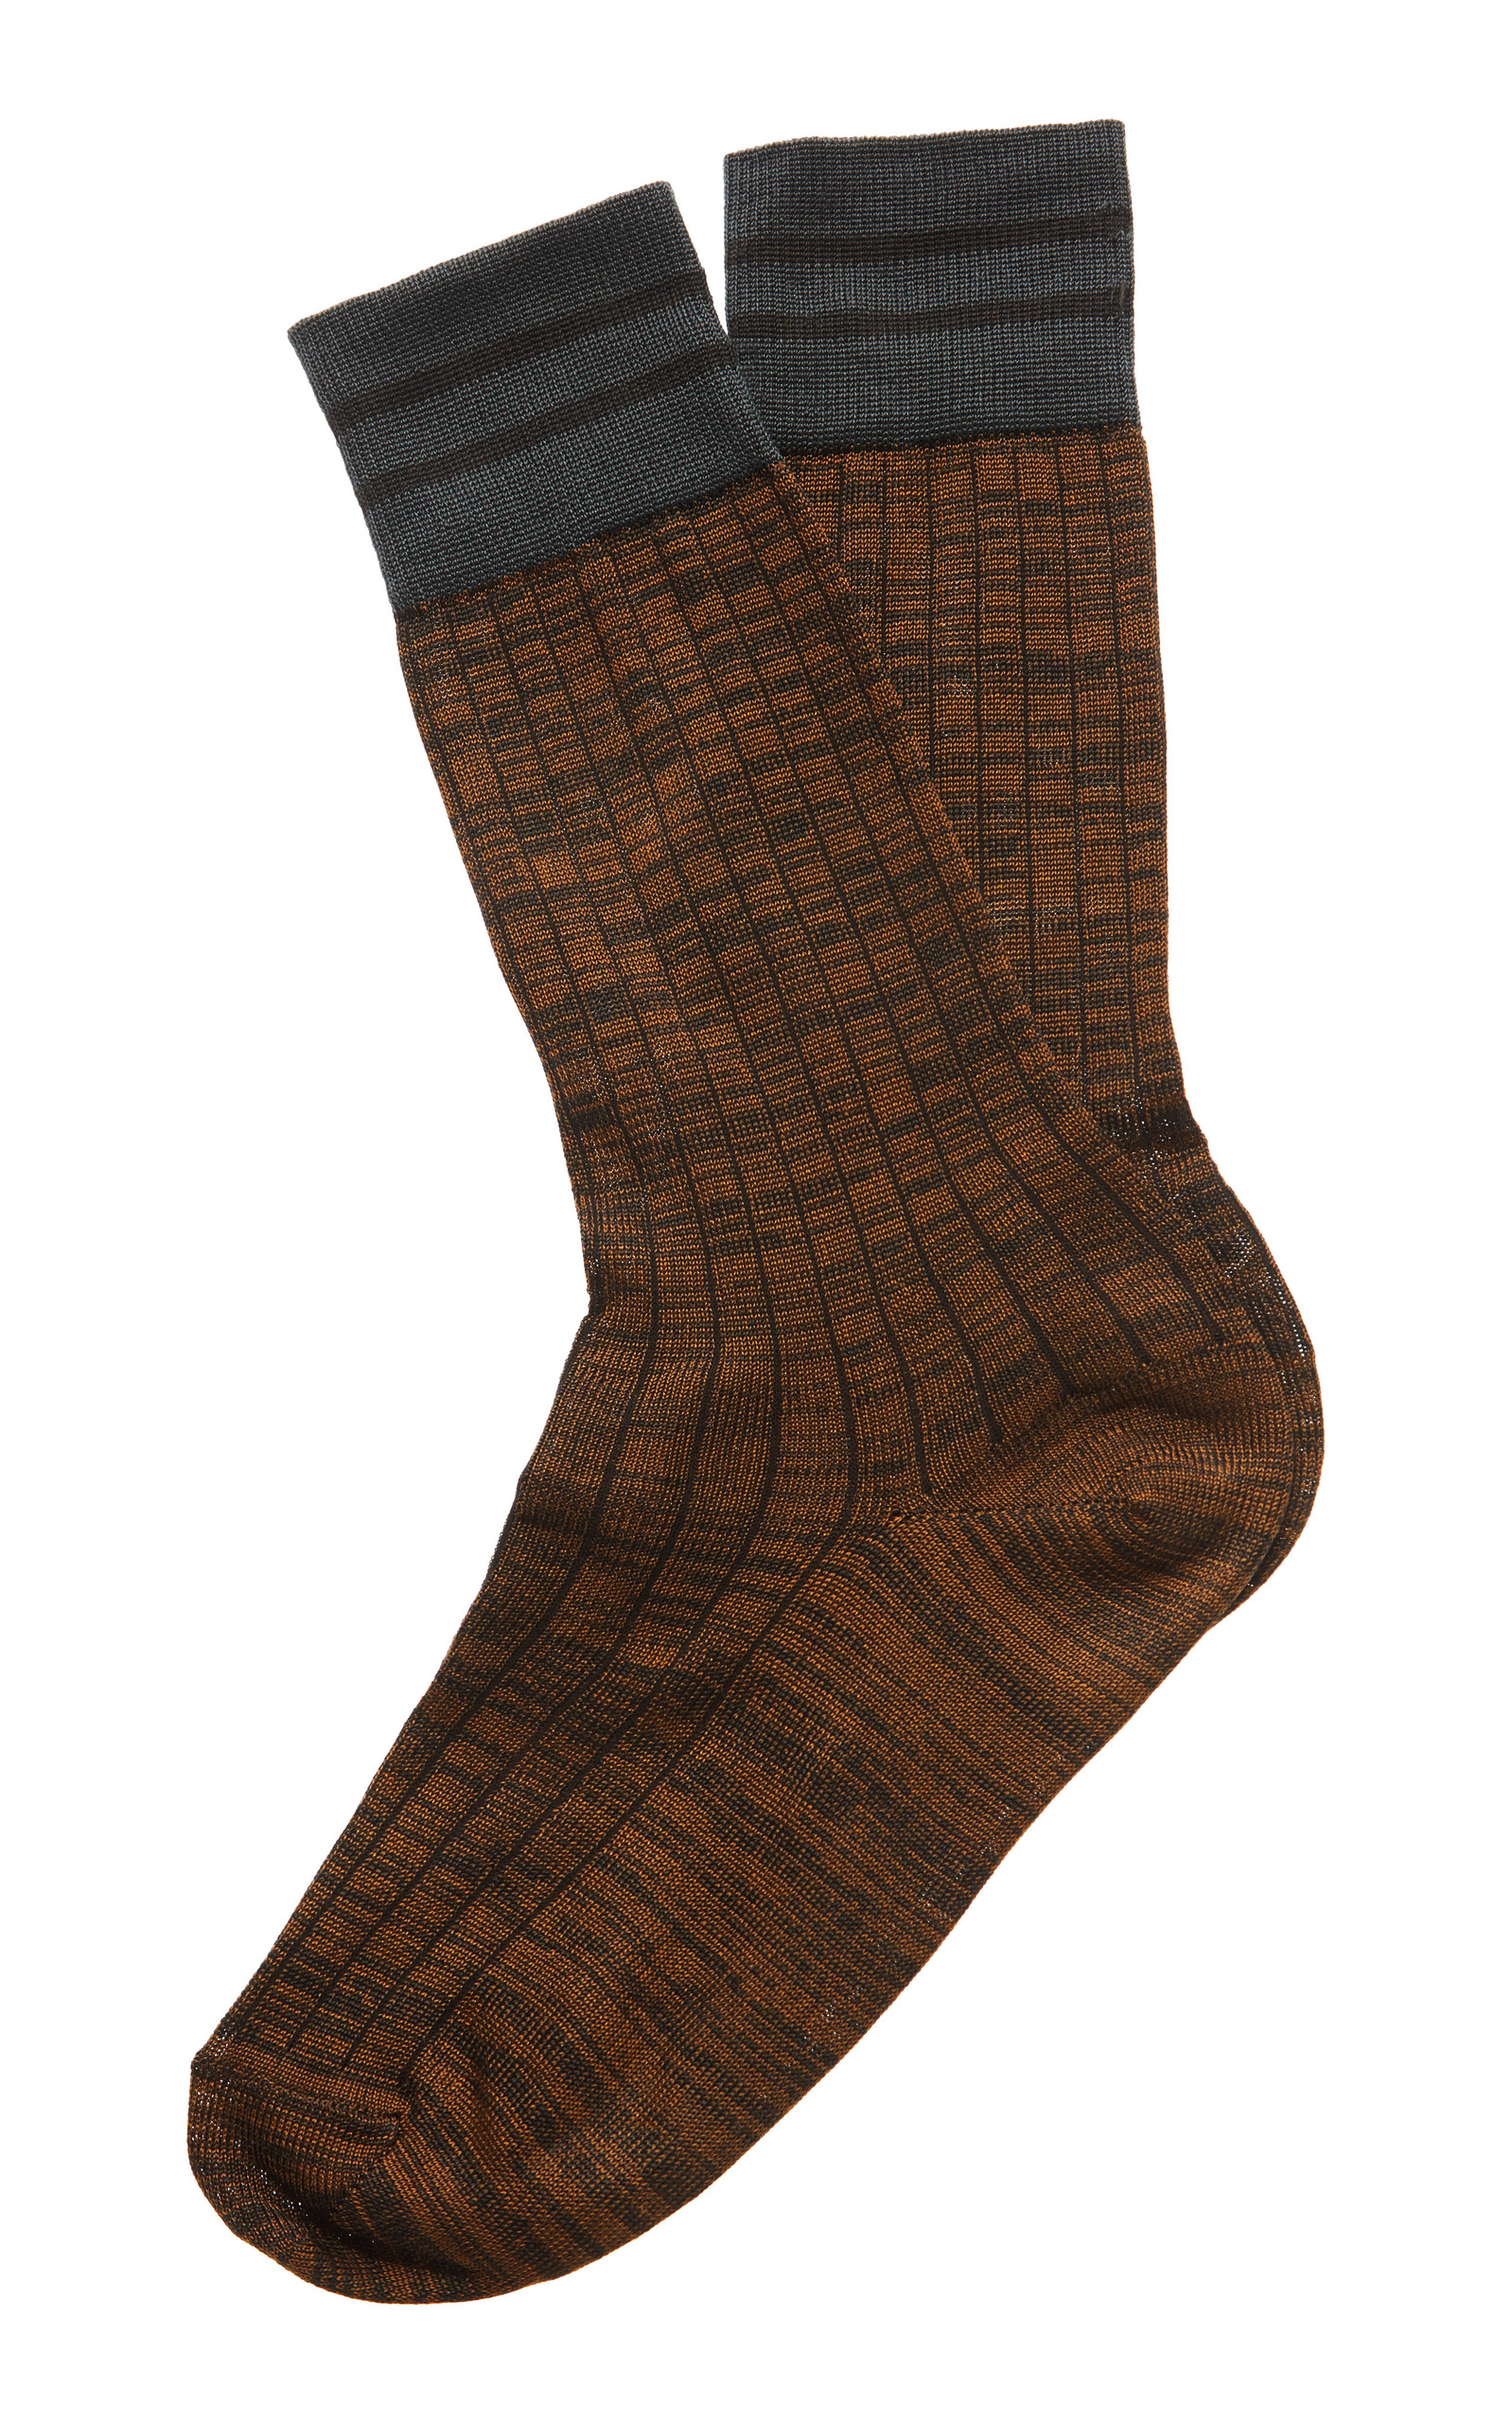 Clearance 2018 Unisex Outlet With Paypal Order Online marl socks with stripes - Brown Marni Choice Sale Online Free Shipping Official Site Free Shipping Popular cc7WtgRAeG